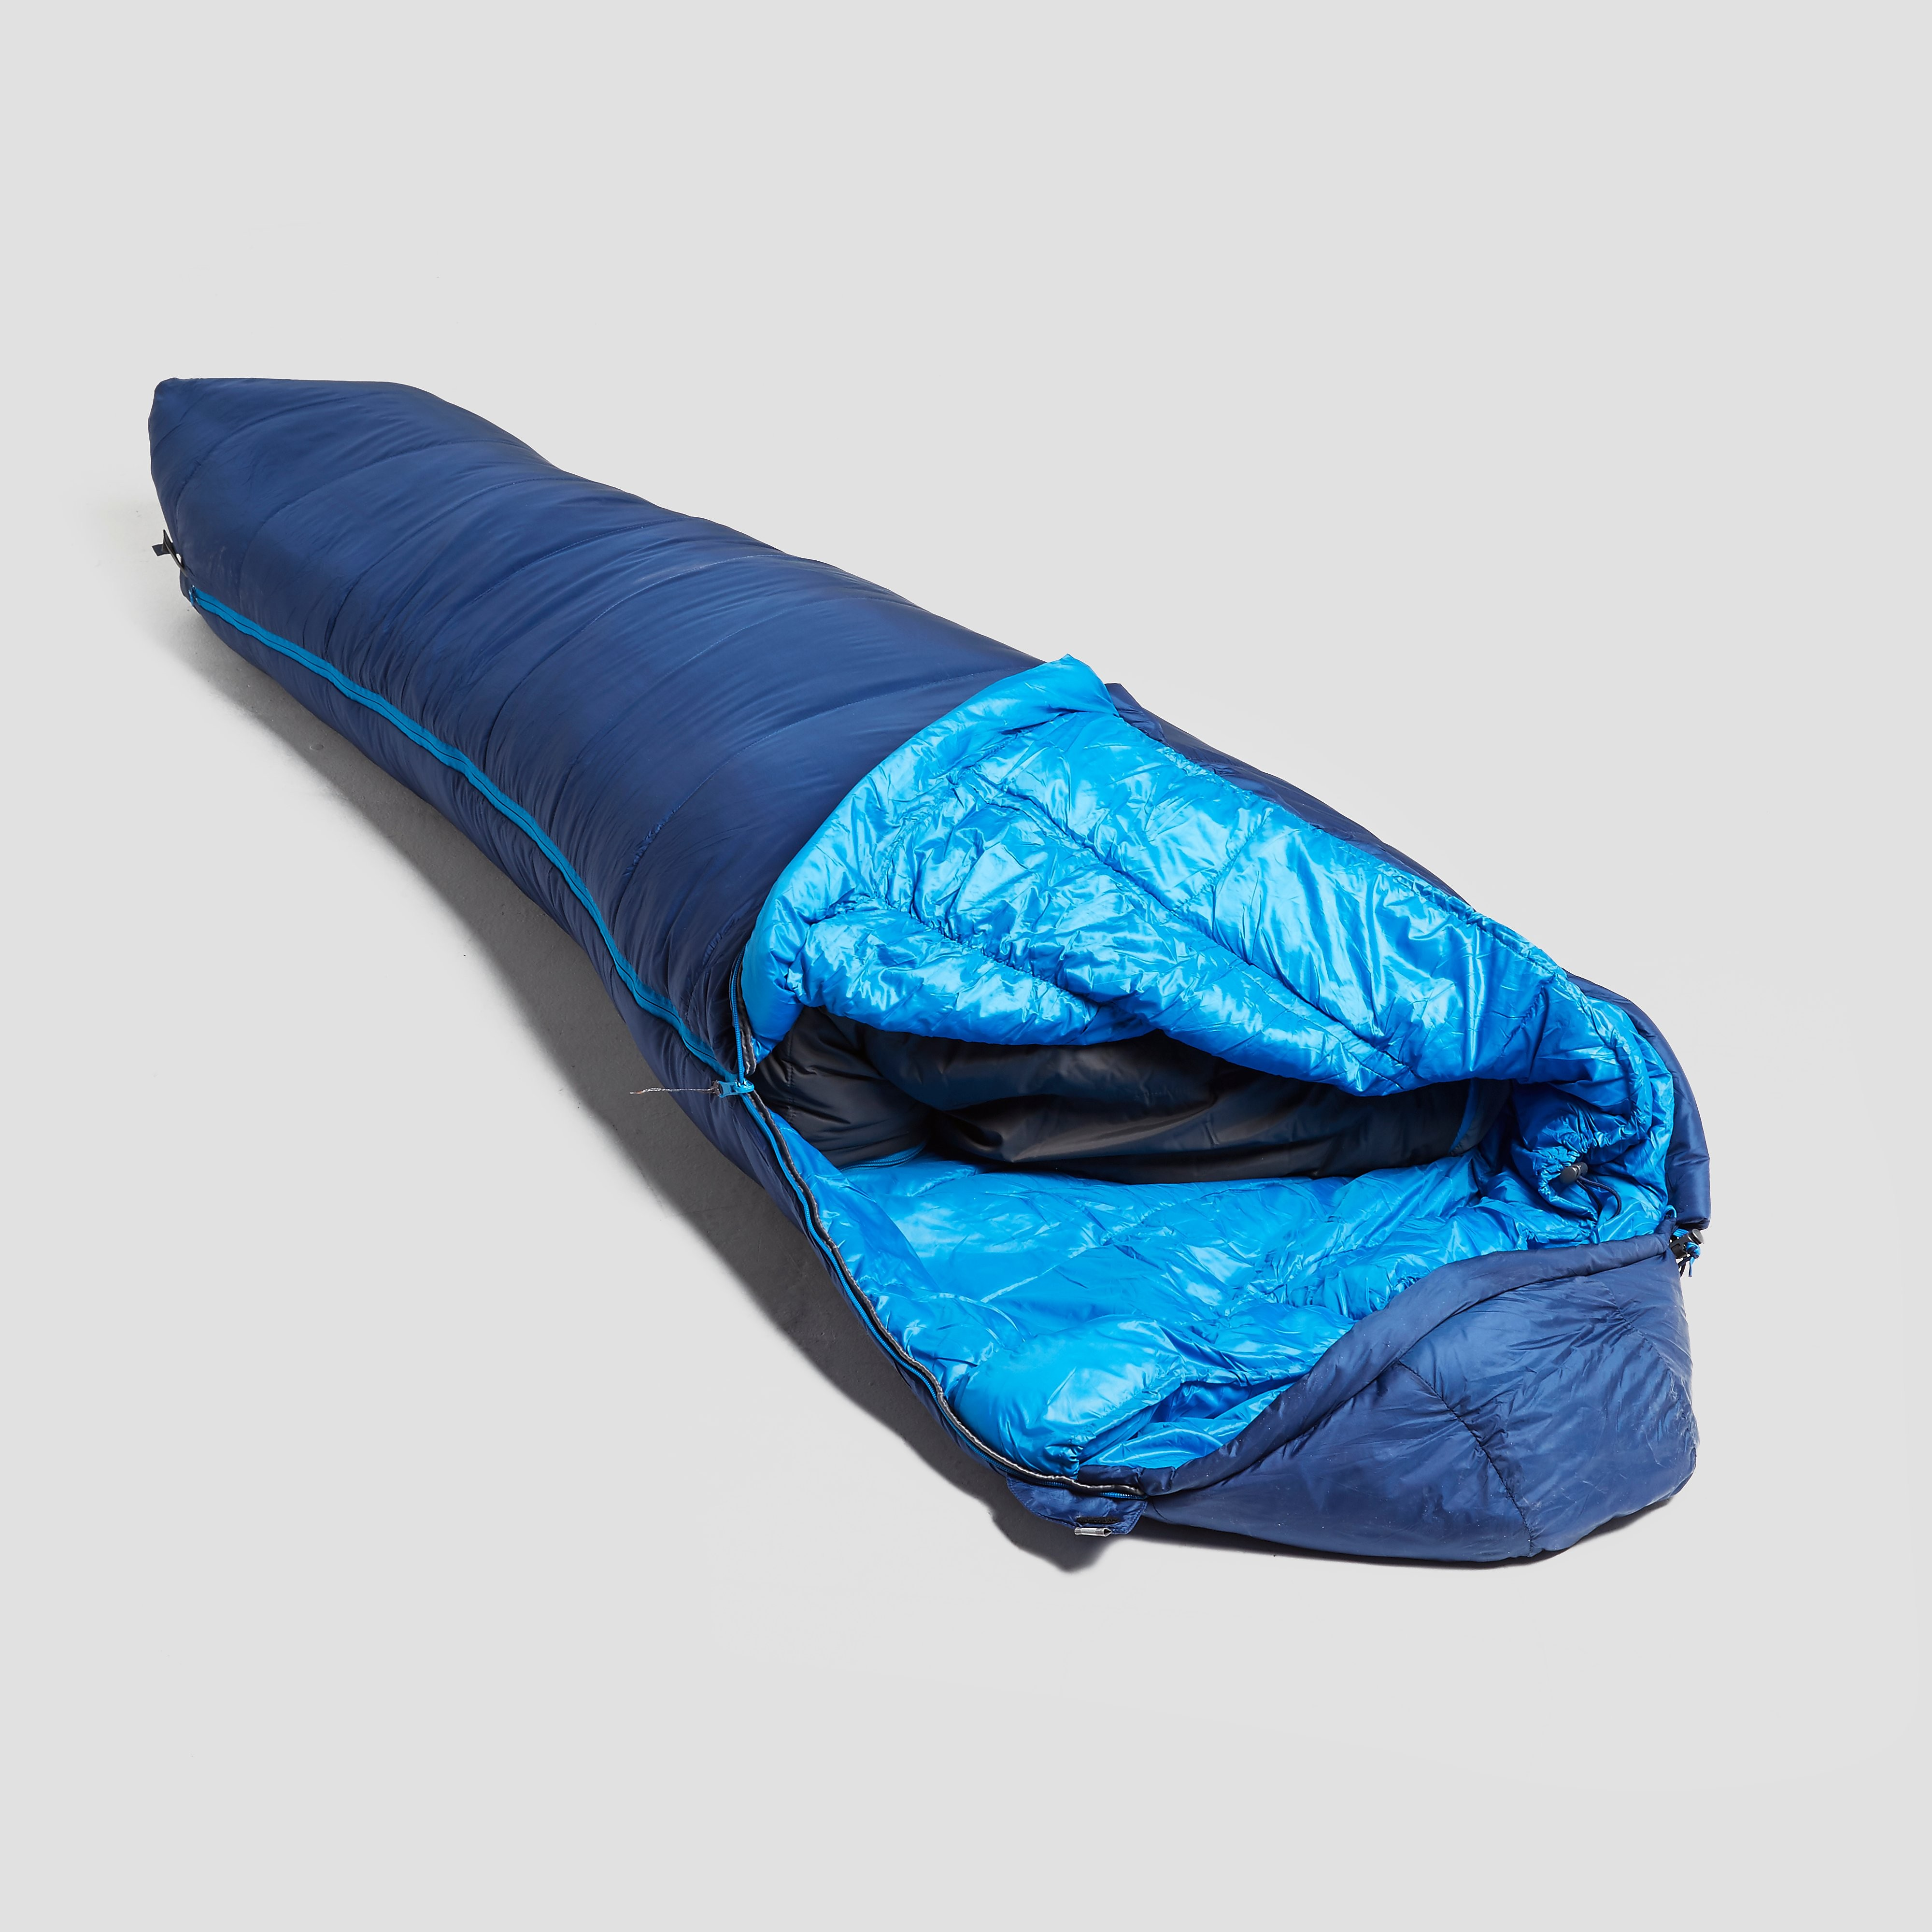 Vango Vango Ultralite Pro 200 Sleeping Bag